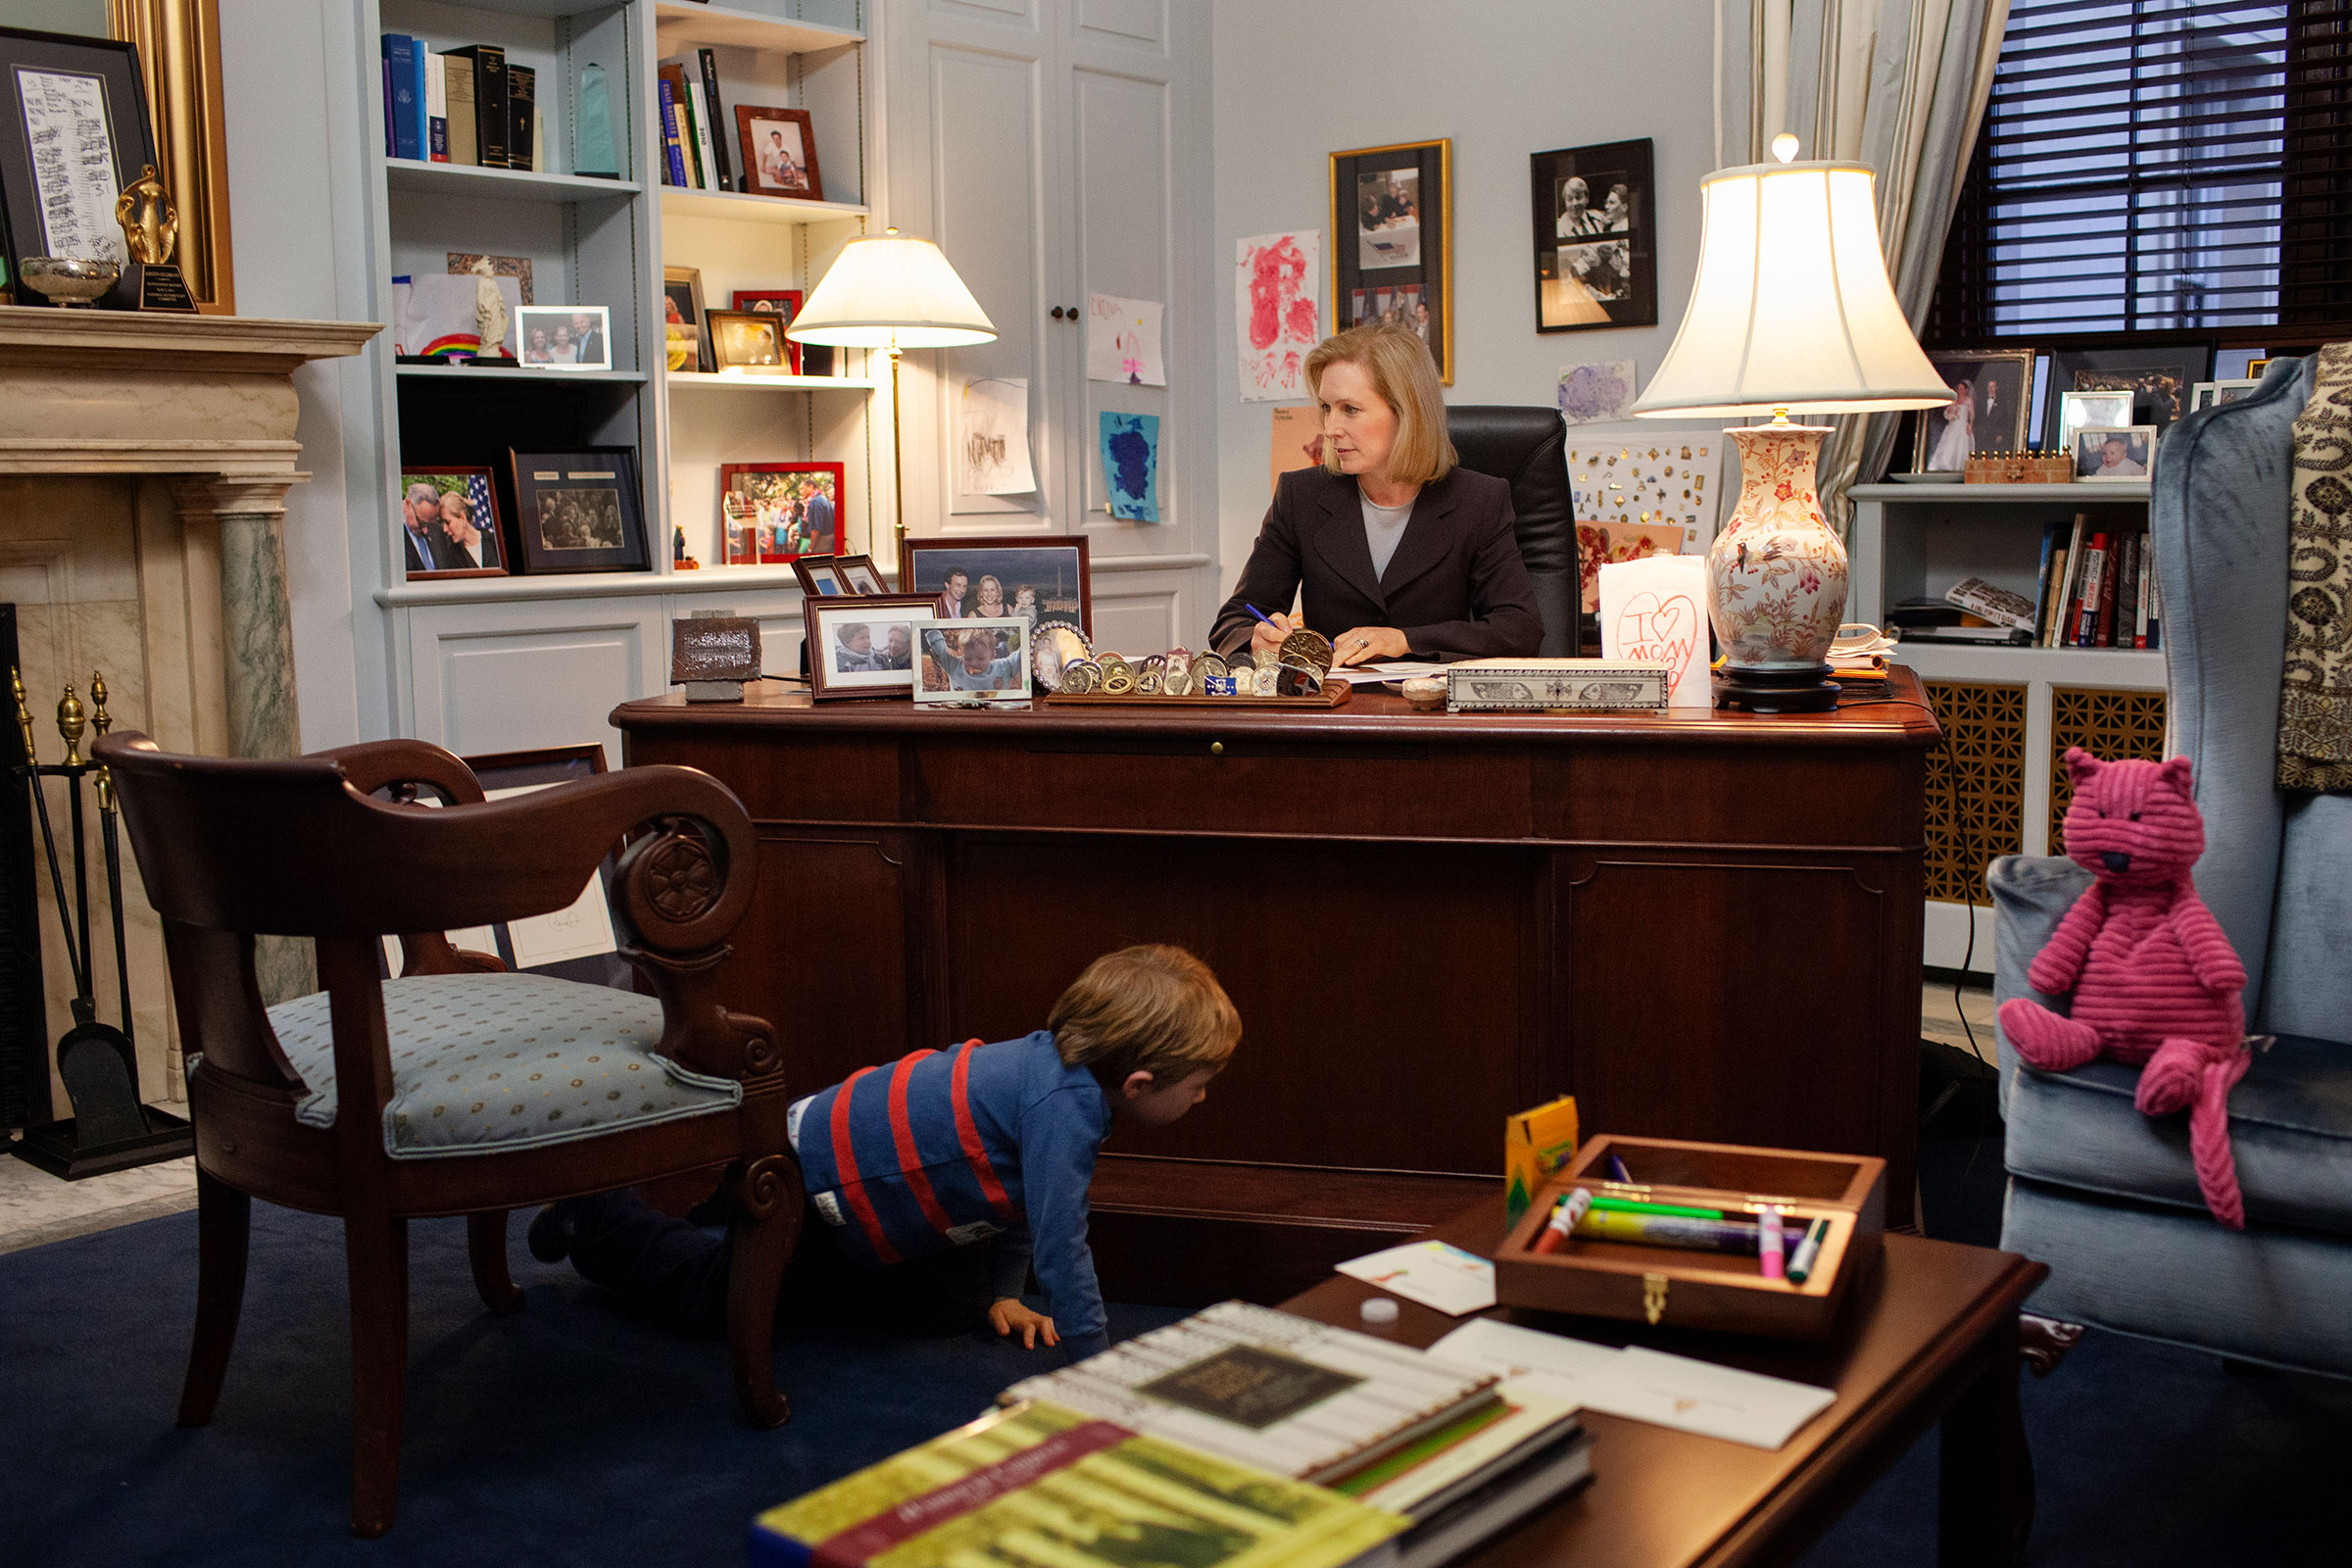 Gillibrand, pictured in her Senate office in 2013, the same year she introduced the FAMILY Act to the Senate